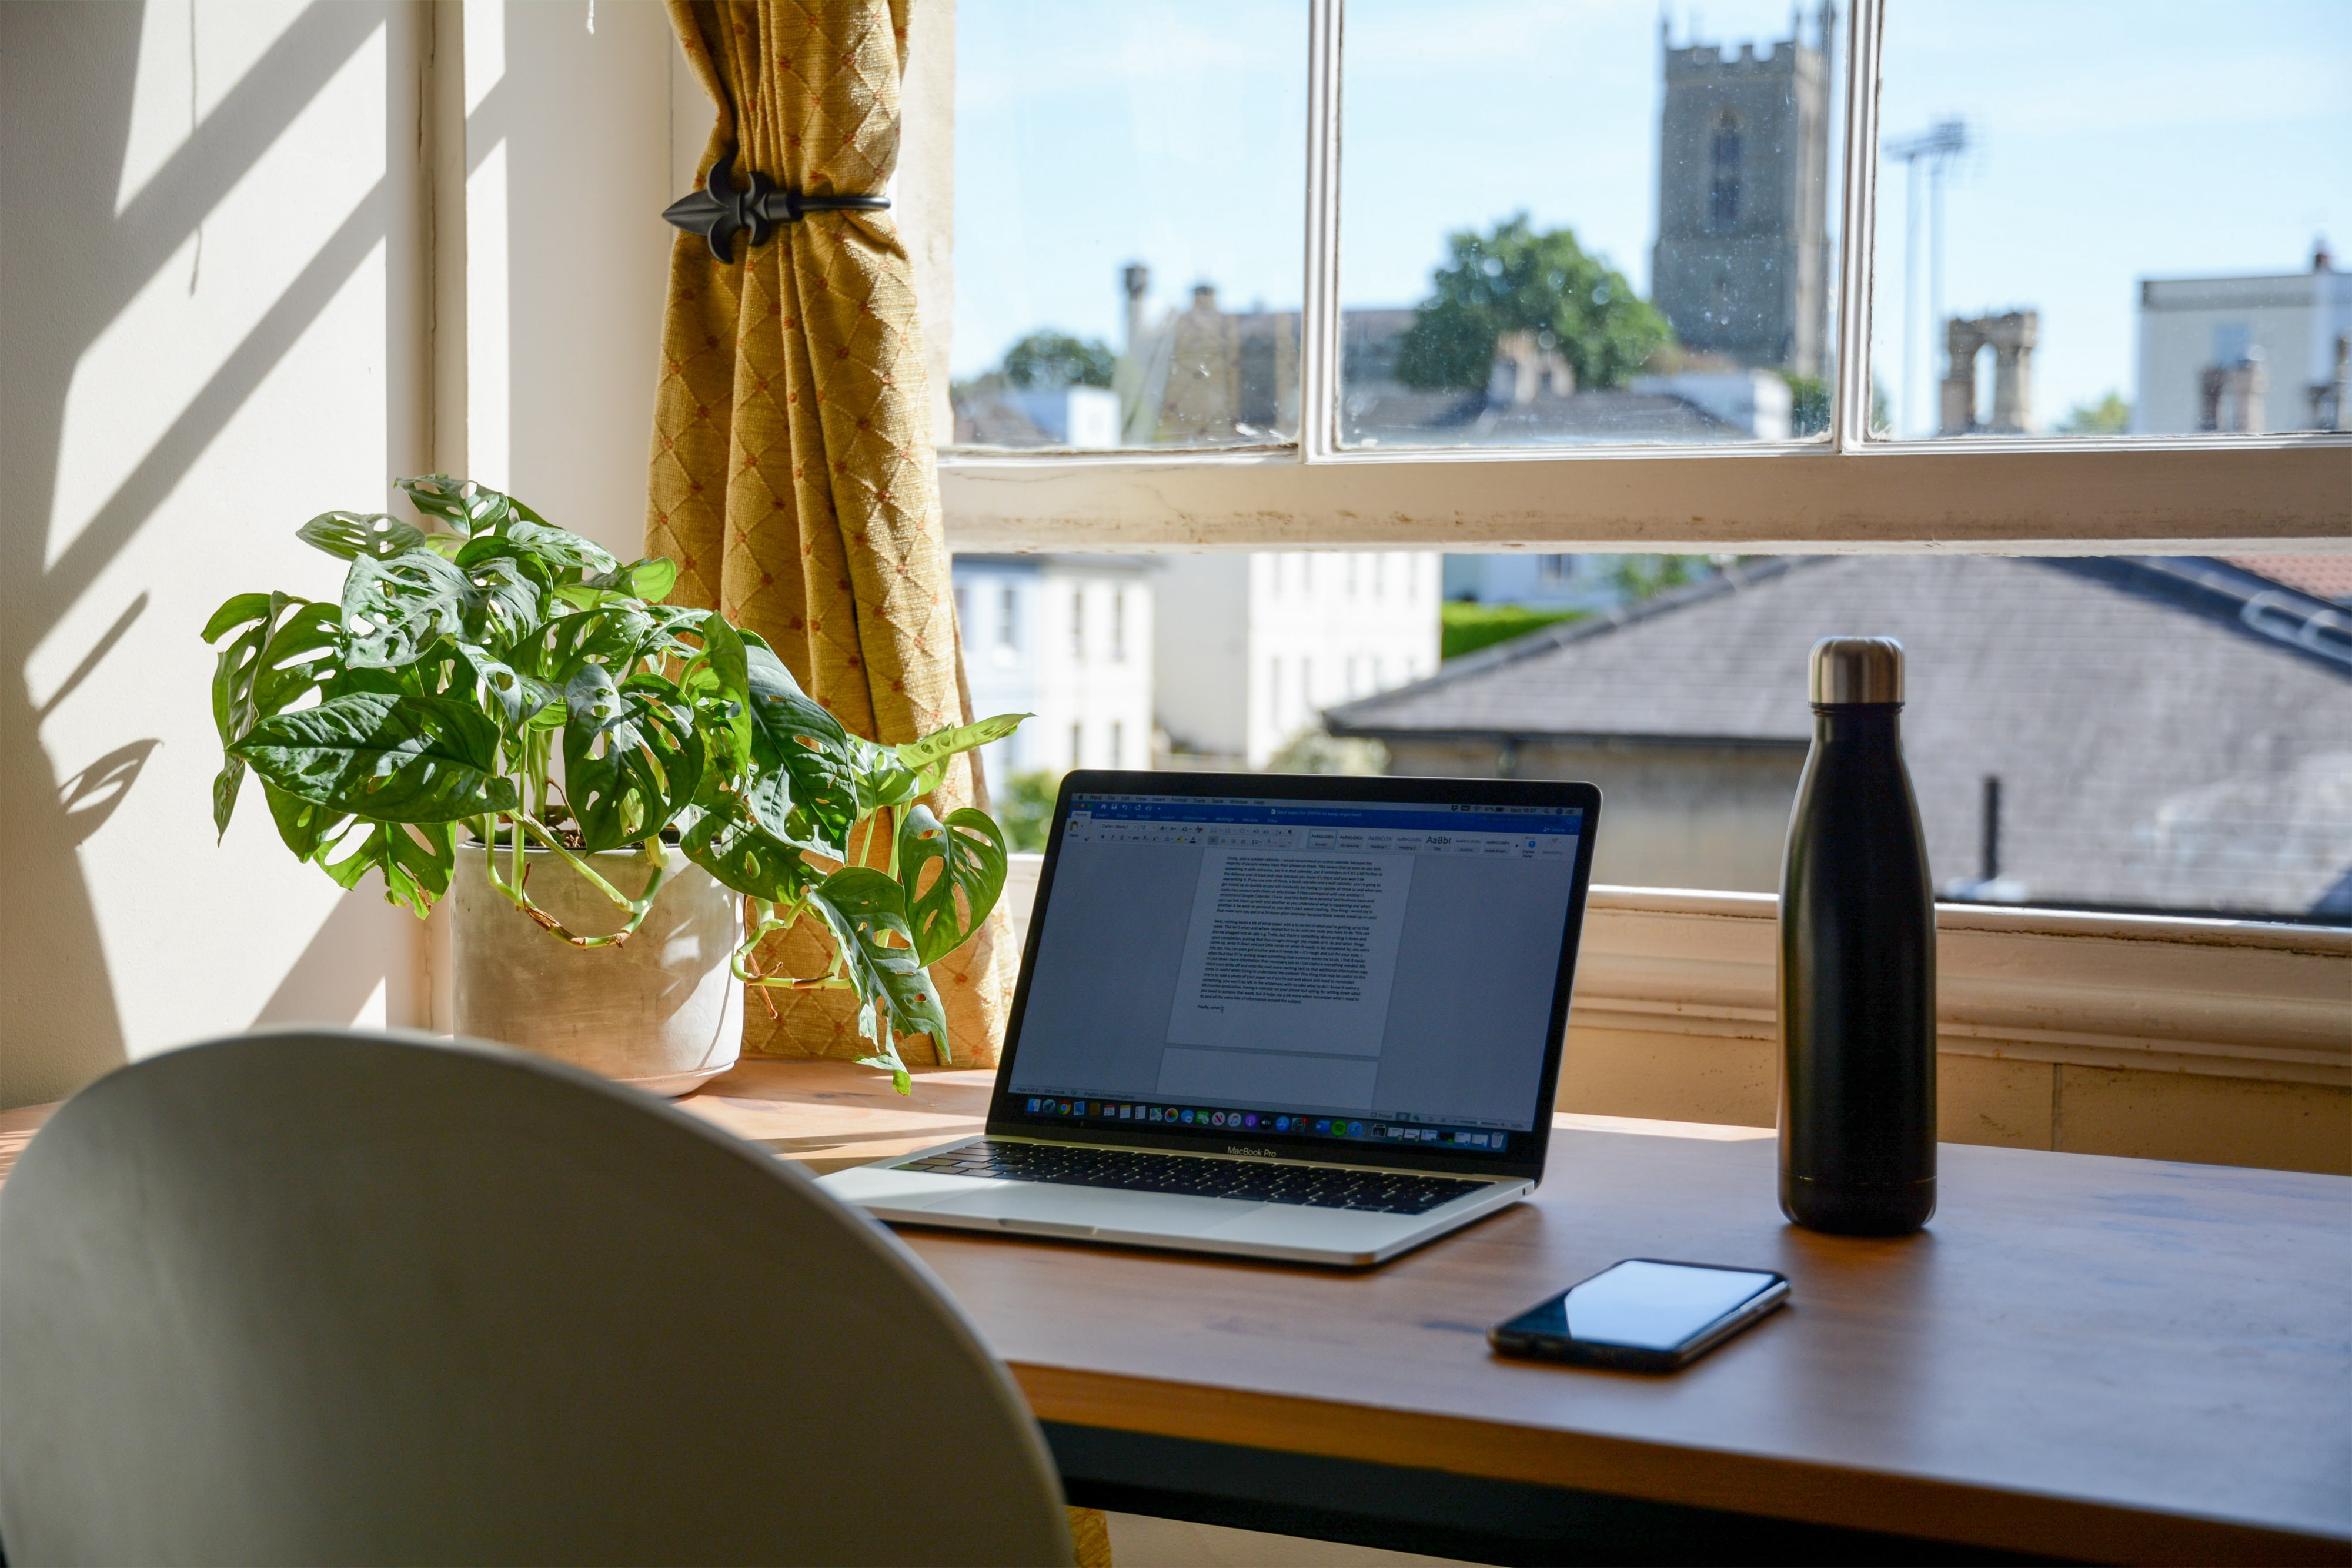 An image of a work from home setup